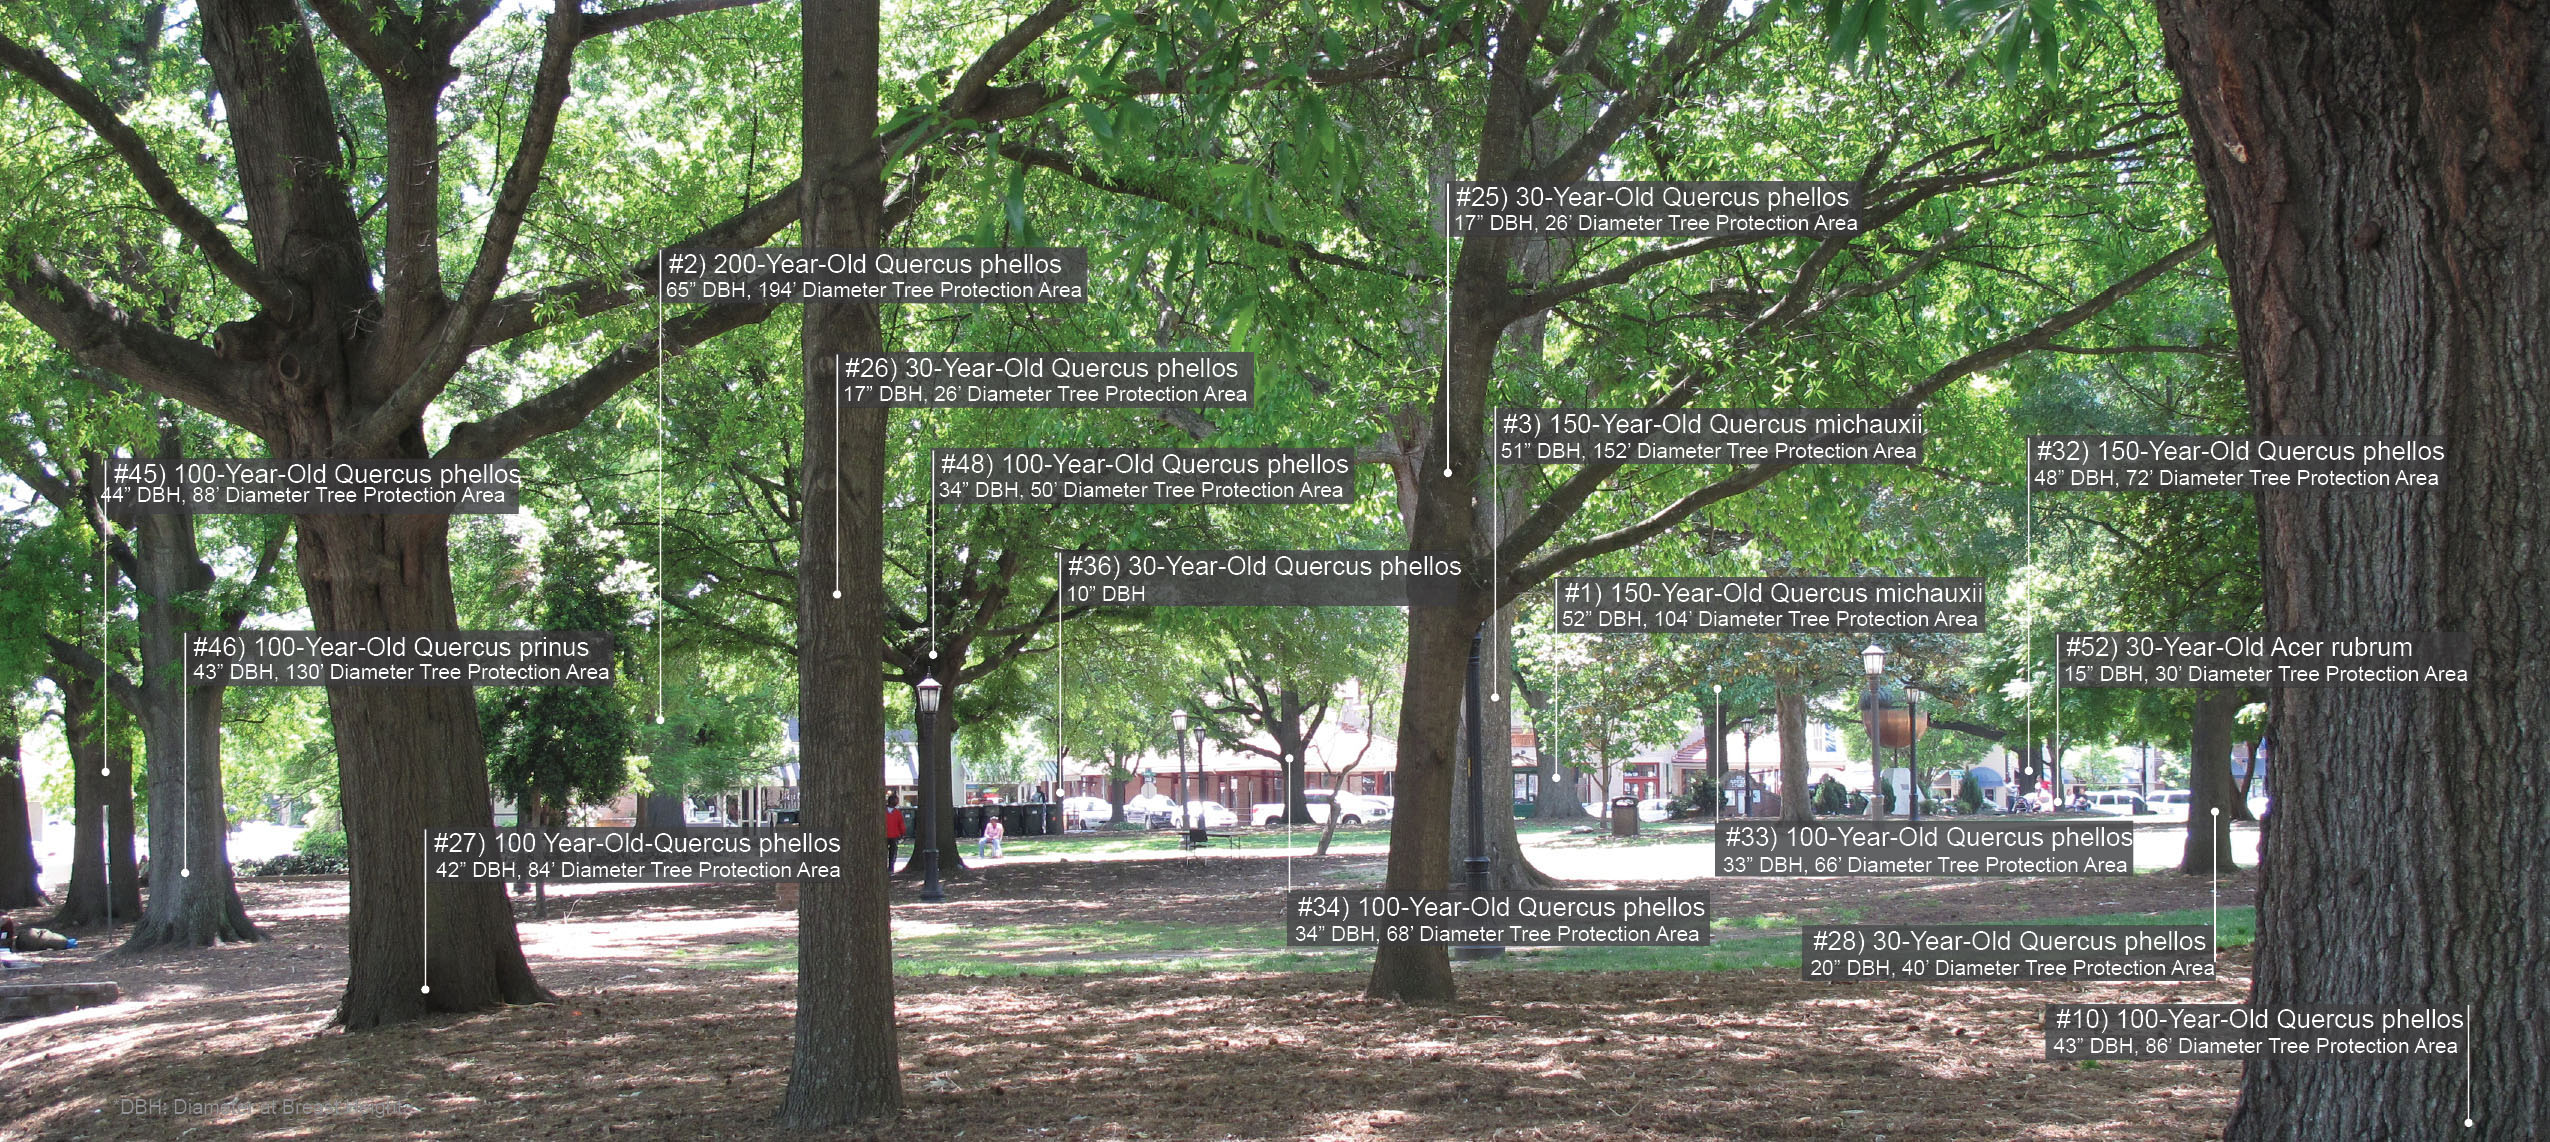 Download Hi-Res Image : urban tree canopy - memphite.com